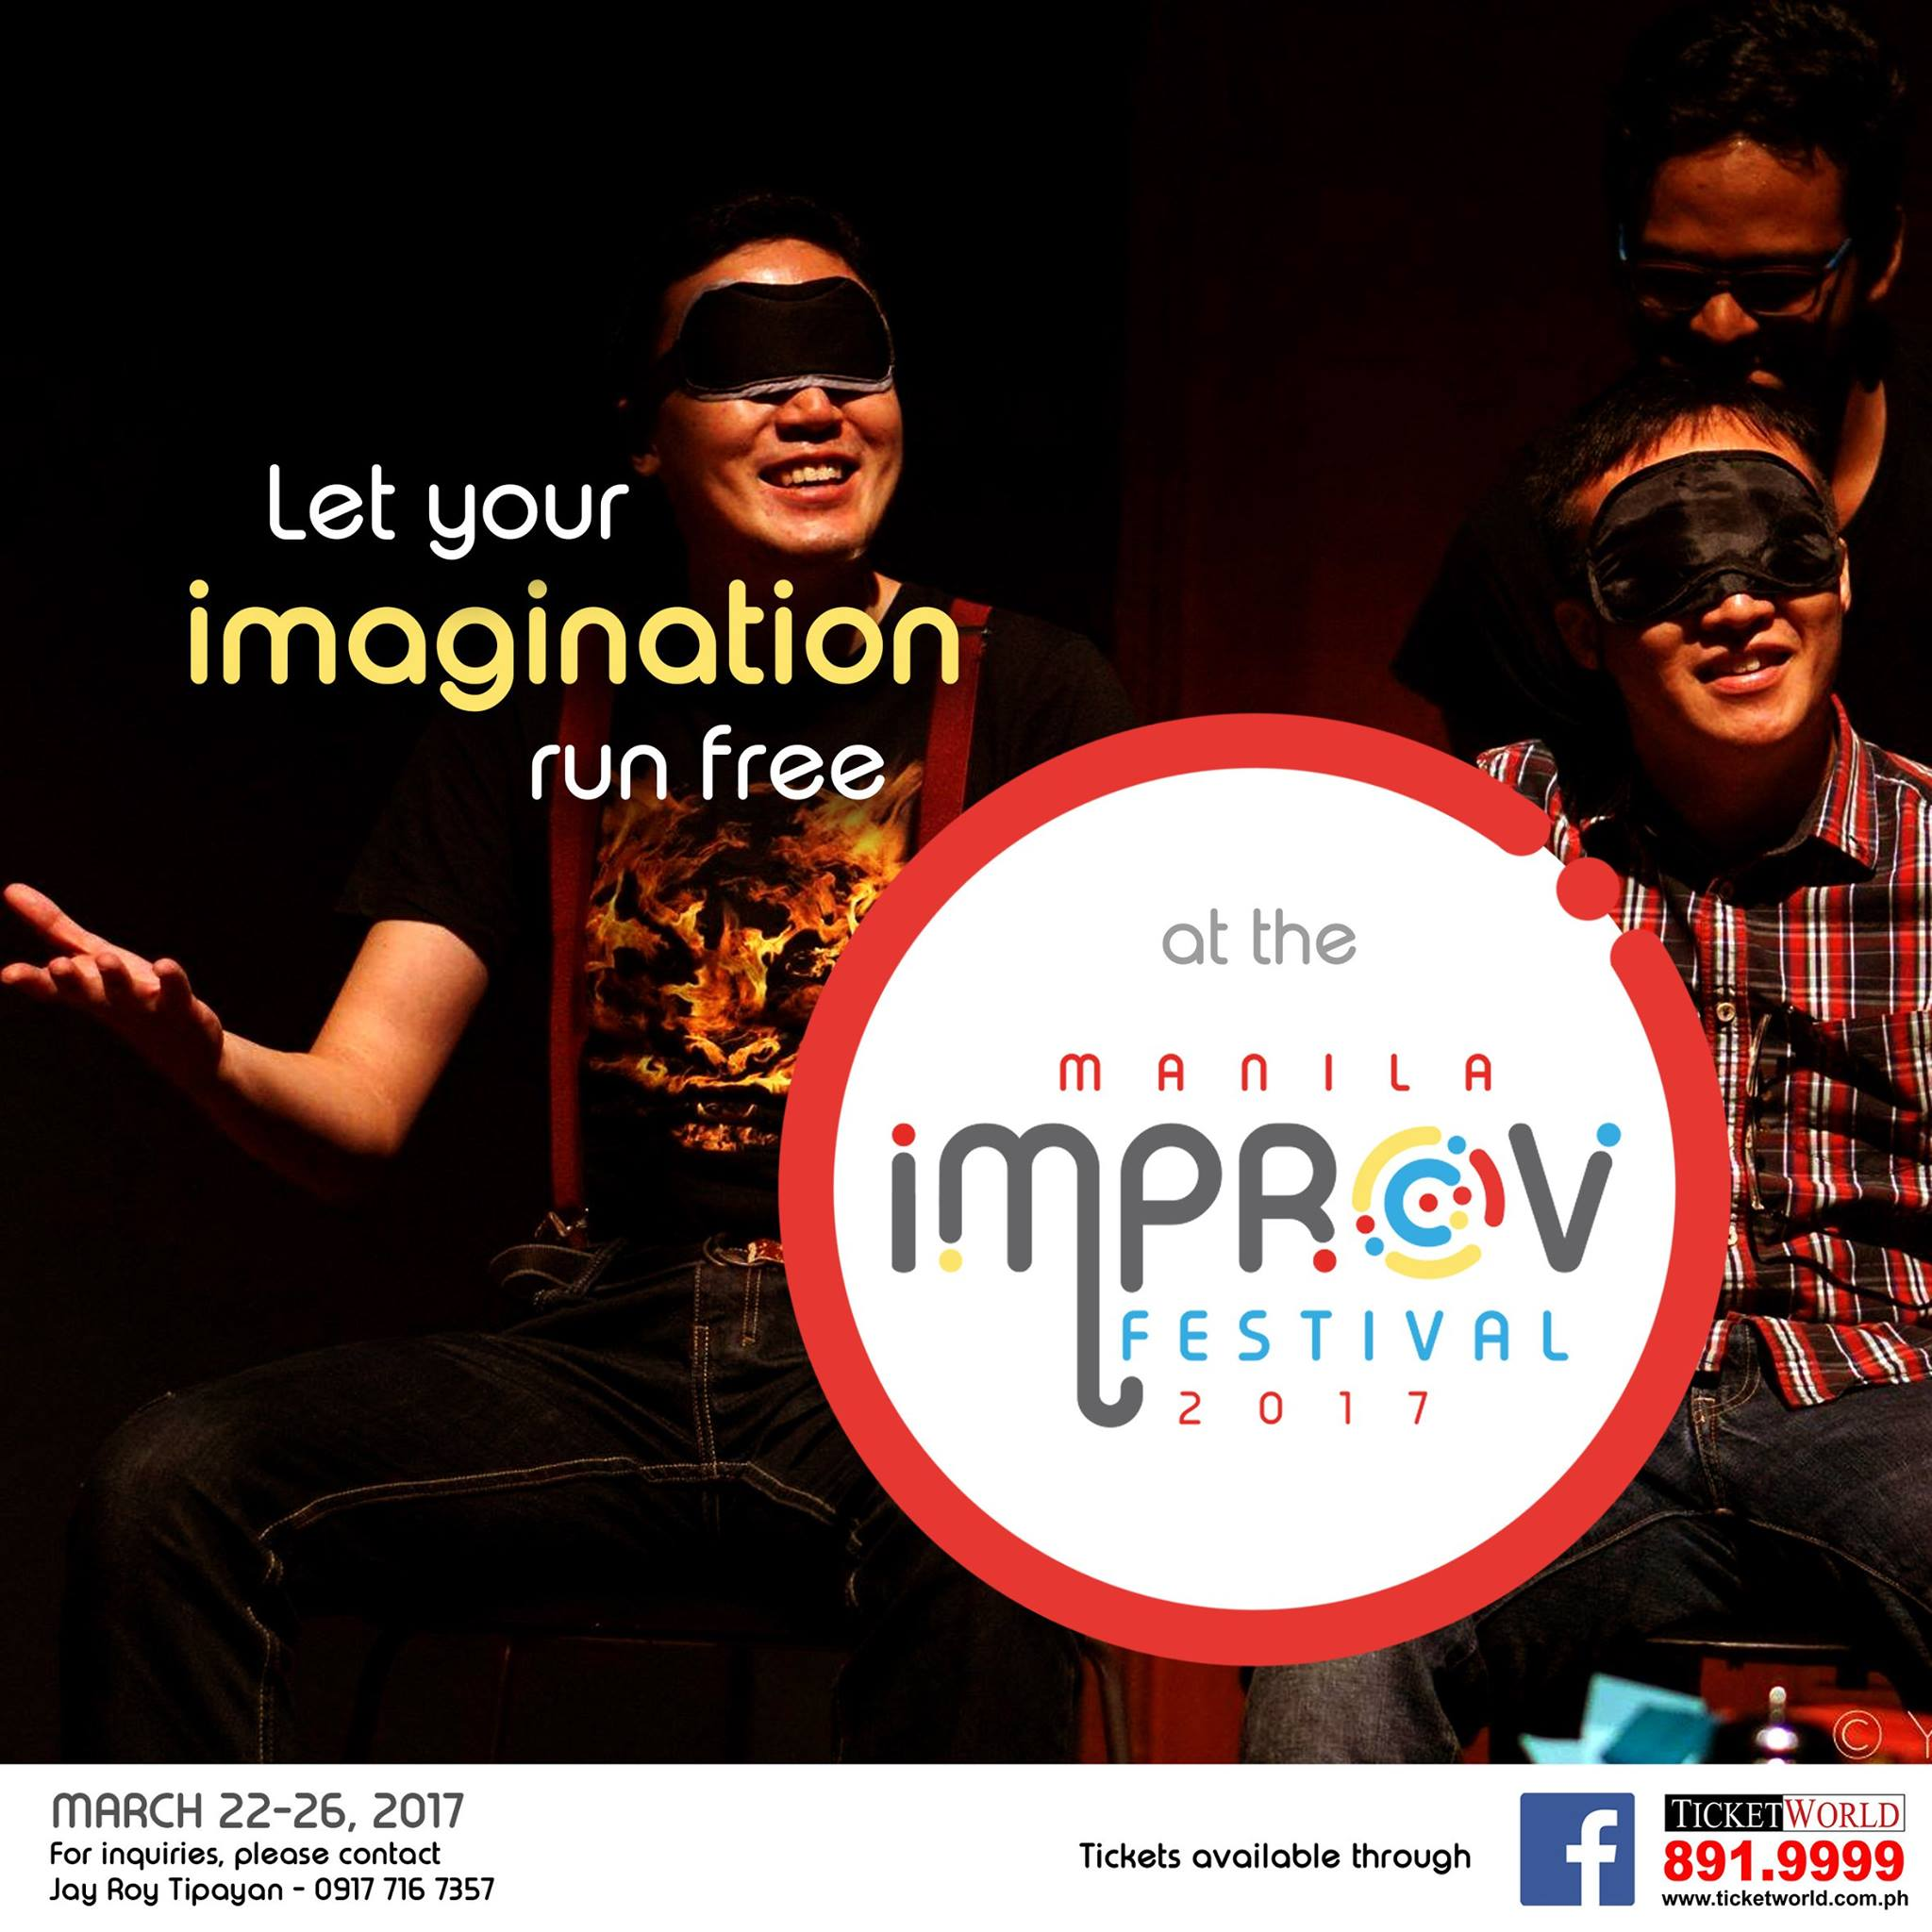 PETA Theater Center Page Liked · March 7 · Edited · Let your imagination run free in every show at the Manila Improv Festival! As a member of the audience, you have a say what you want to happen in a performance. Think of yourselves as co-scriptwriters in every play. It's an experience like no other. Book your tickets now through Facebook, Ticketworld or the following numbers: 0917 716 7357; 725 6244. #ManilaImprovFest